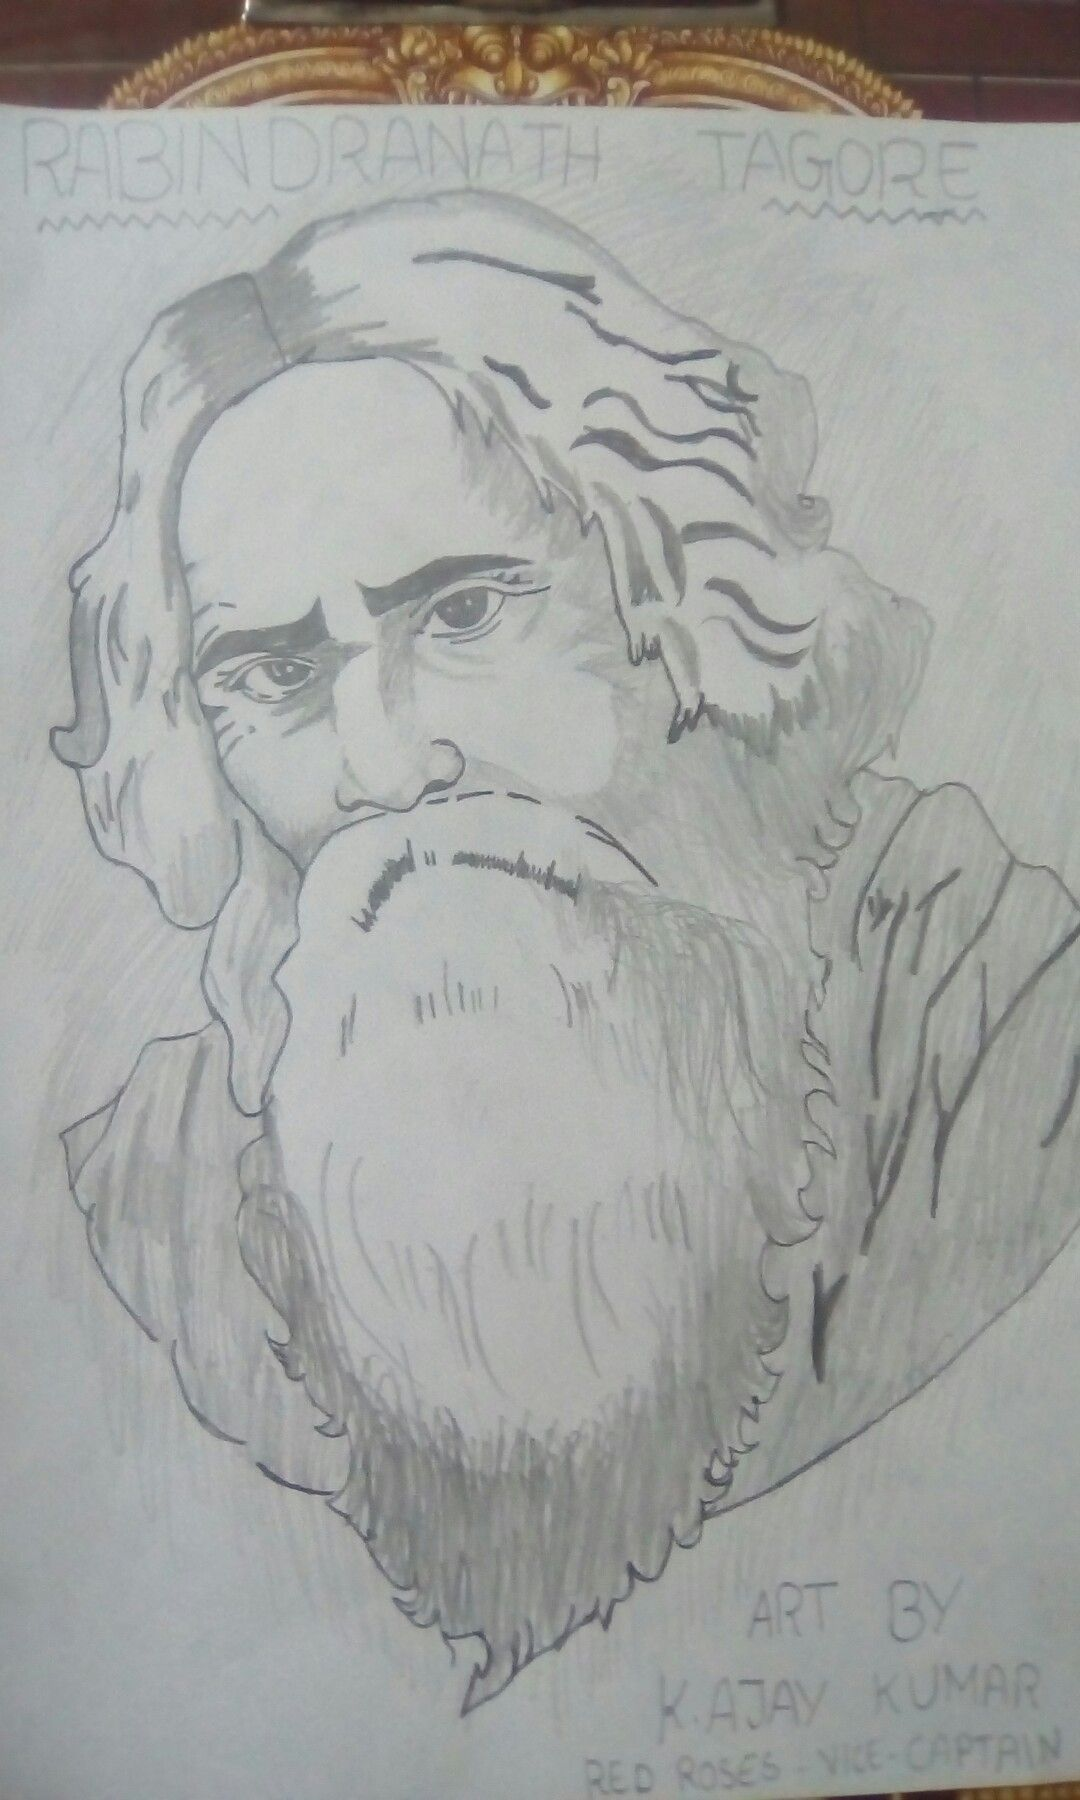 Rabindranath tagore rangoli ideas drawing sketches sketching butterflies projects to try